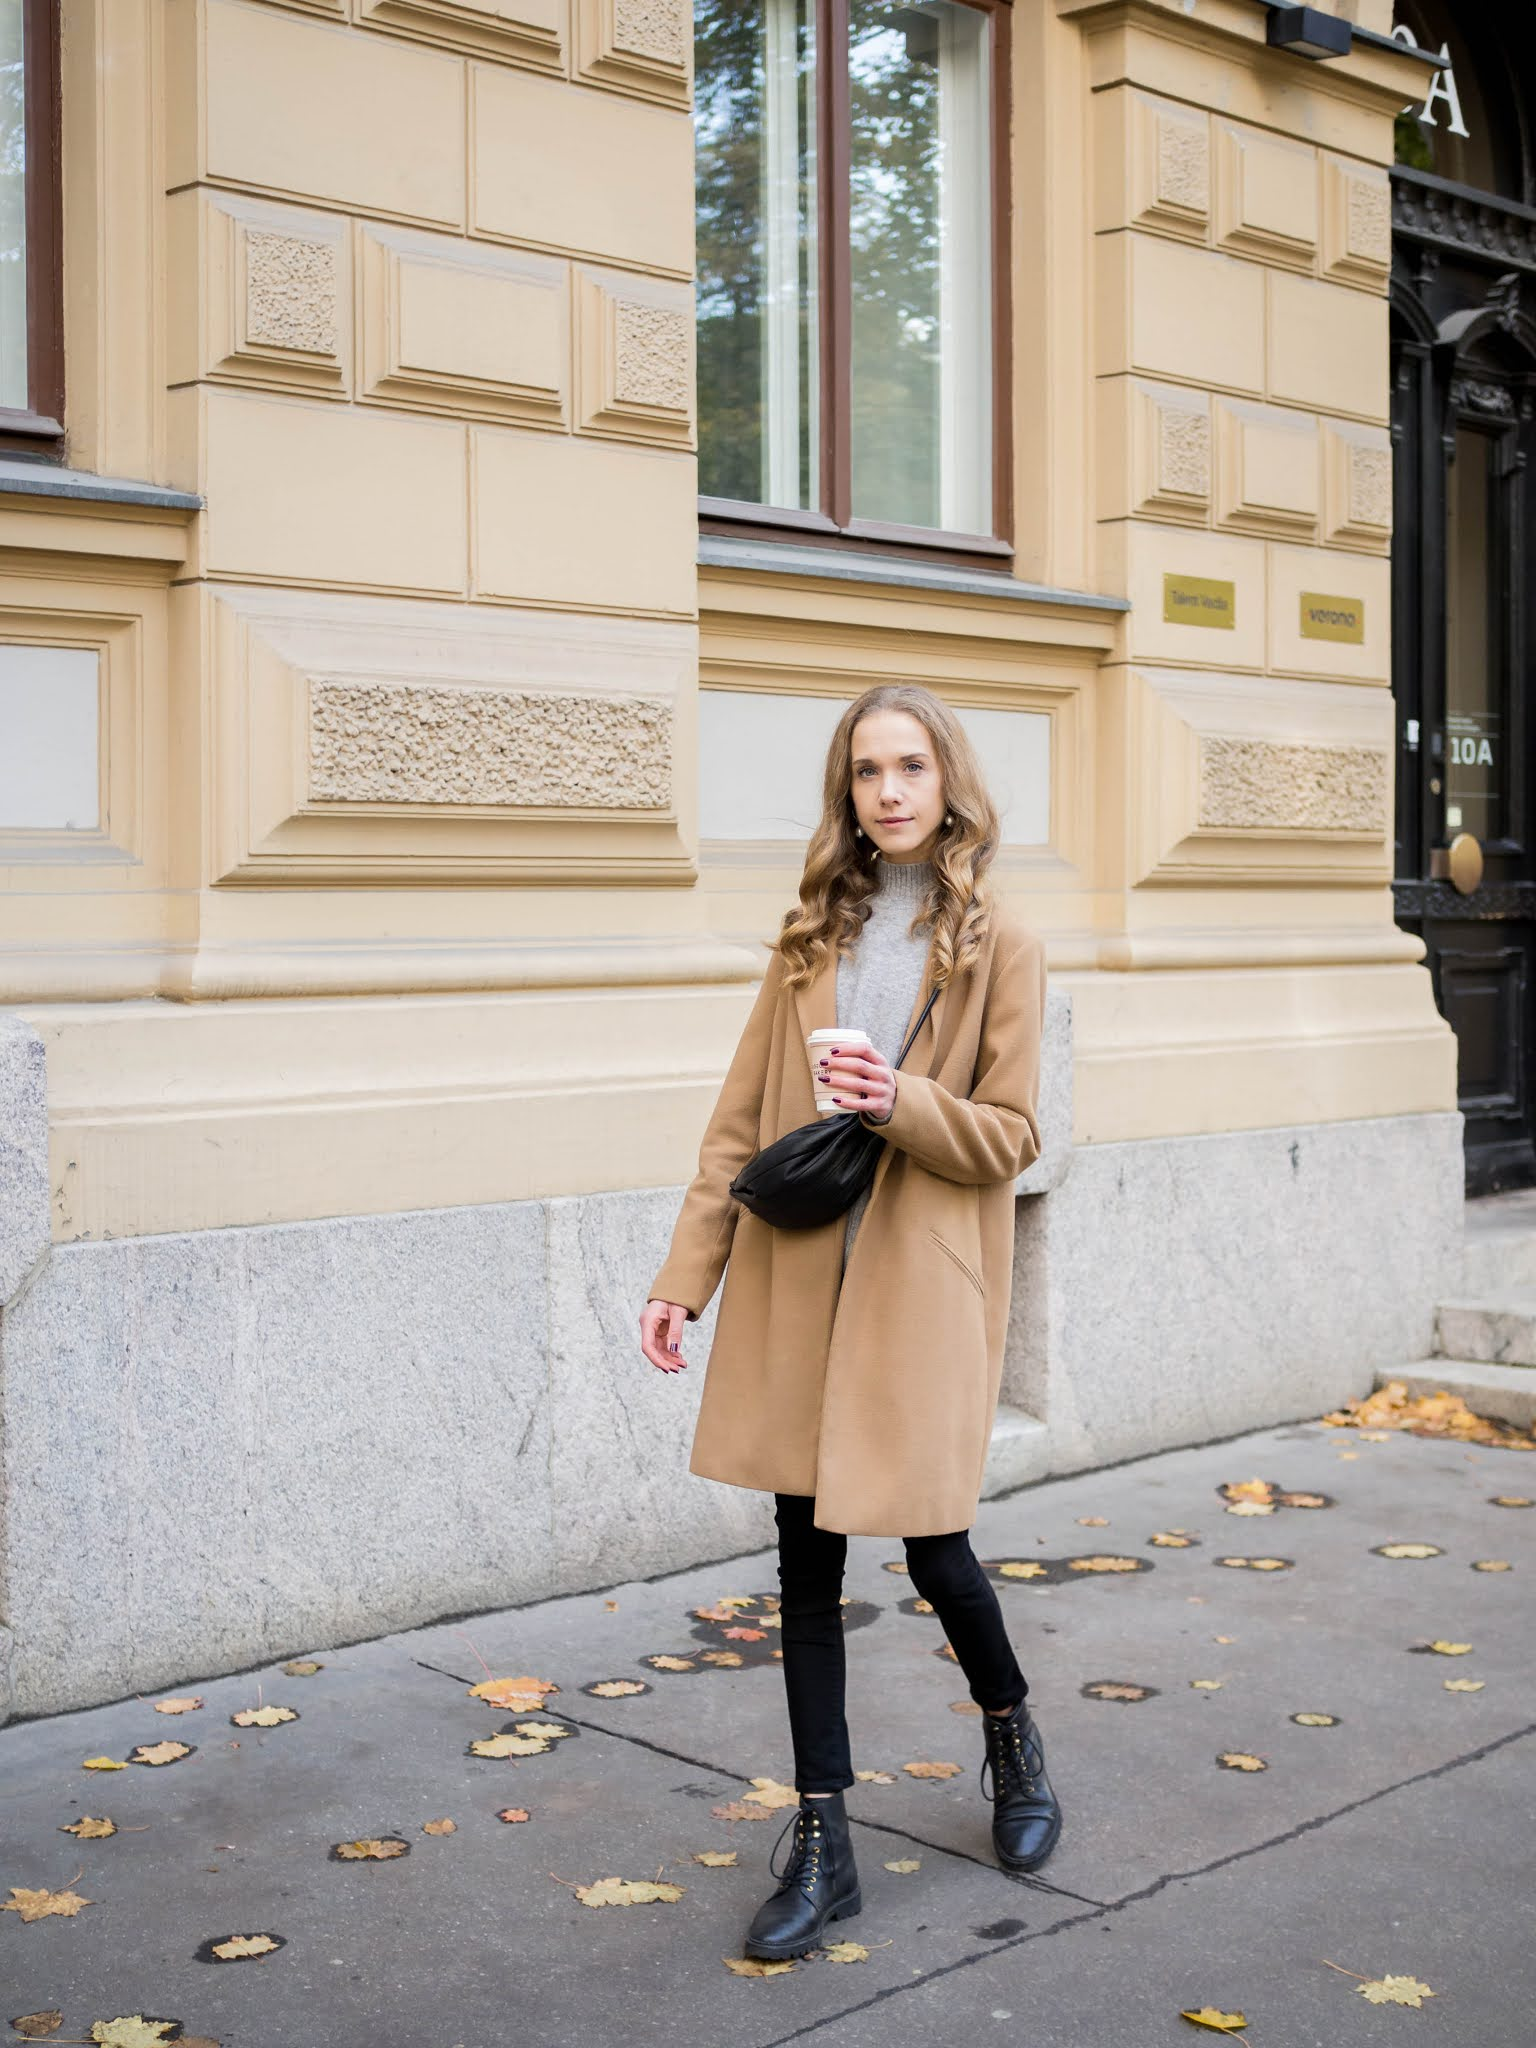 Syksyn ja talven beiget takit // Beige coats for autumn and winter